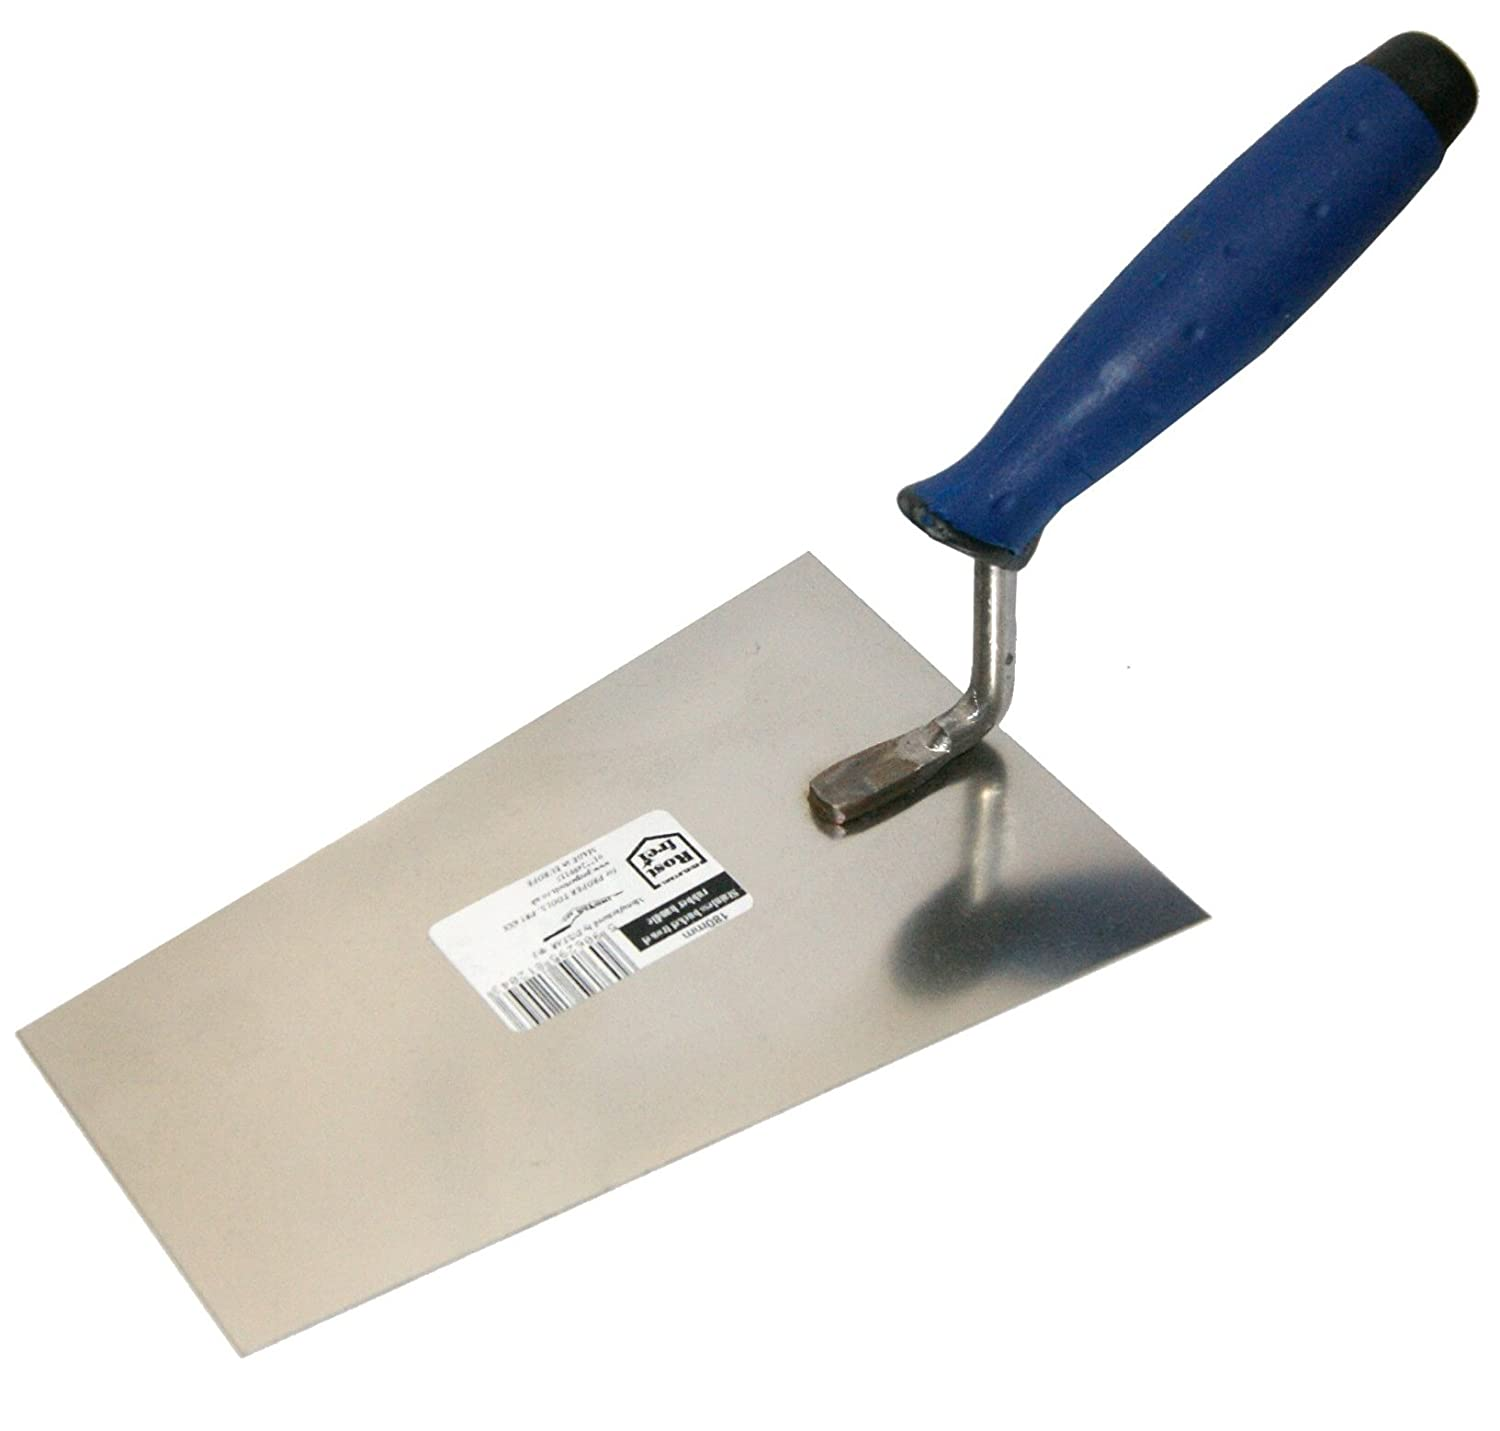 Bucket Trowel 180mm (7') Rubber handle. Stainless Steel (1204) Instar 180mm stainless steel rubber